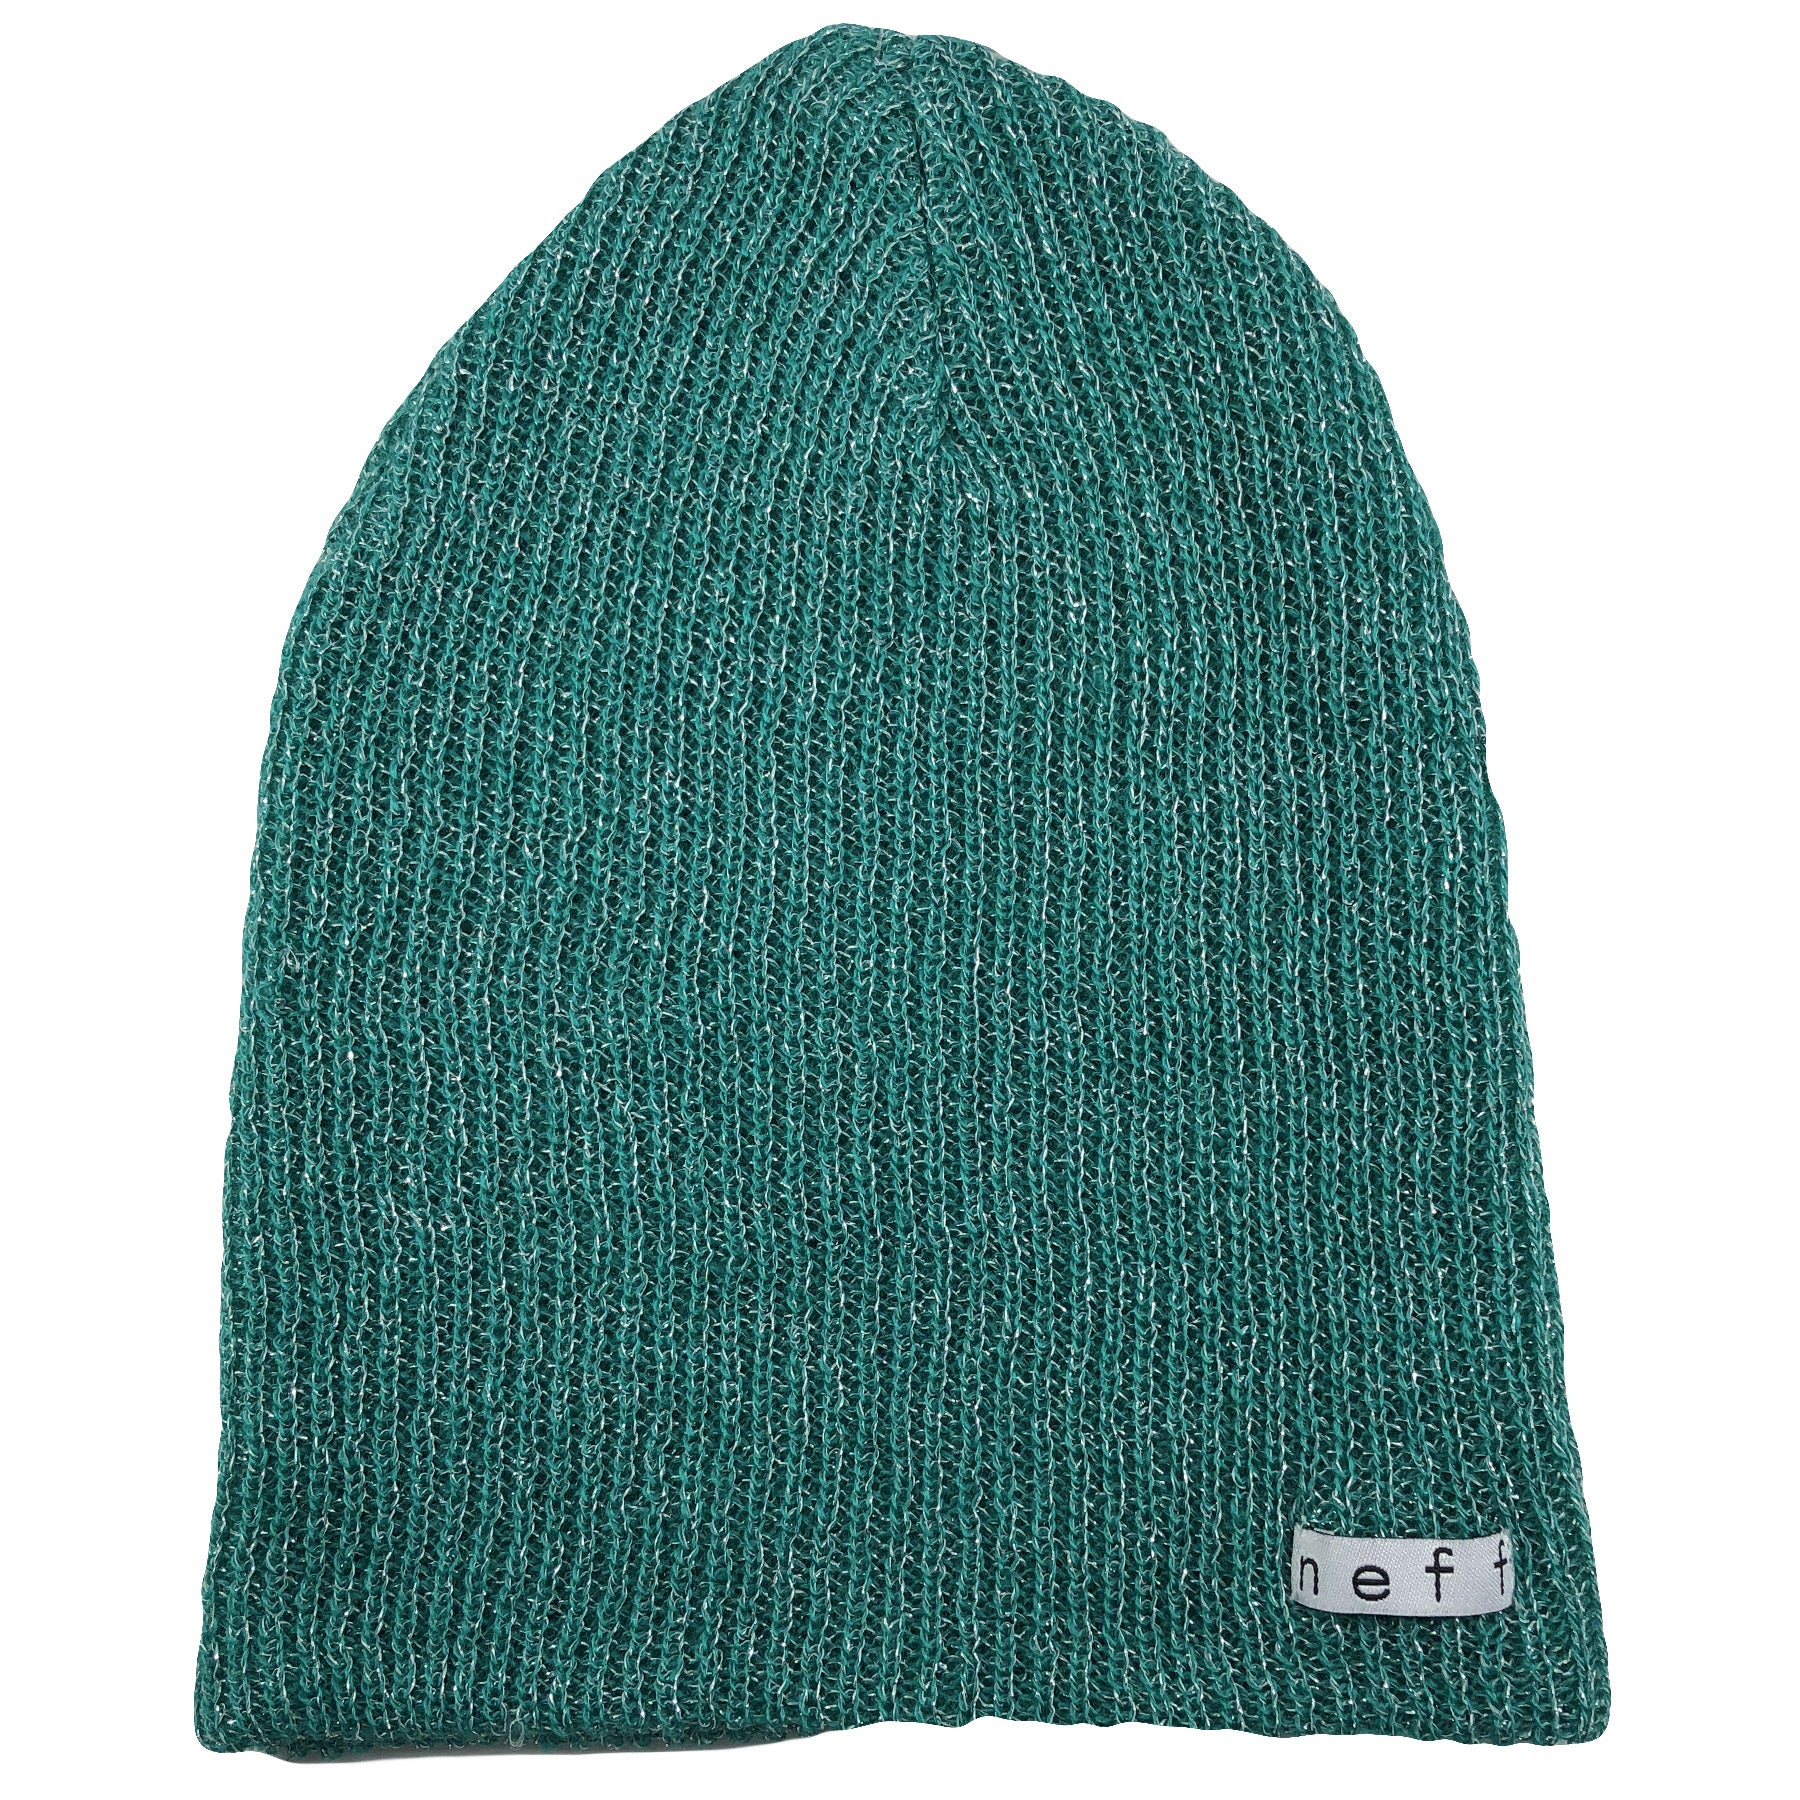 9239affecca the neff daily teal beanie is a teal color and features a neff label in  white